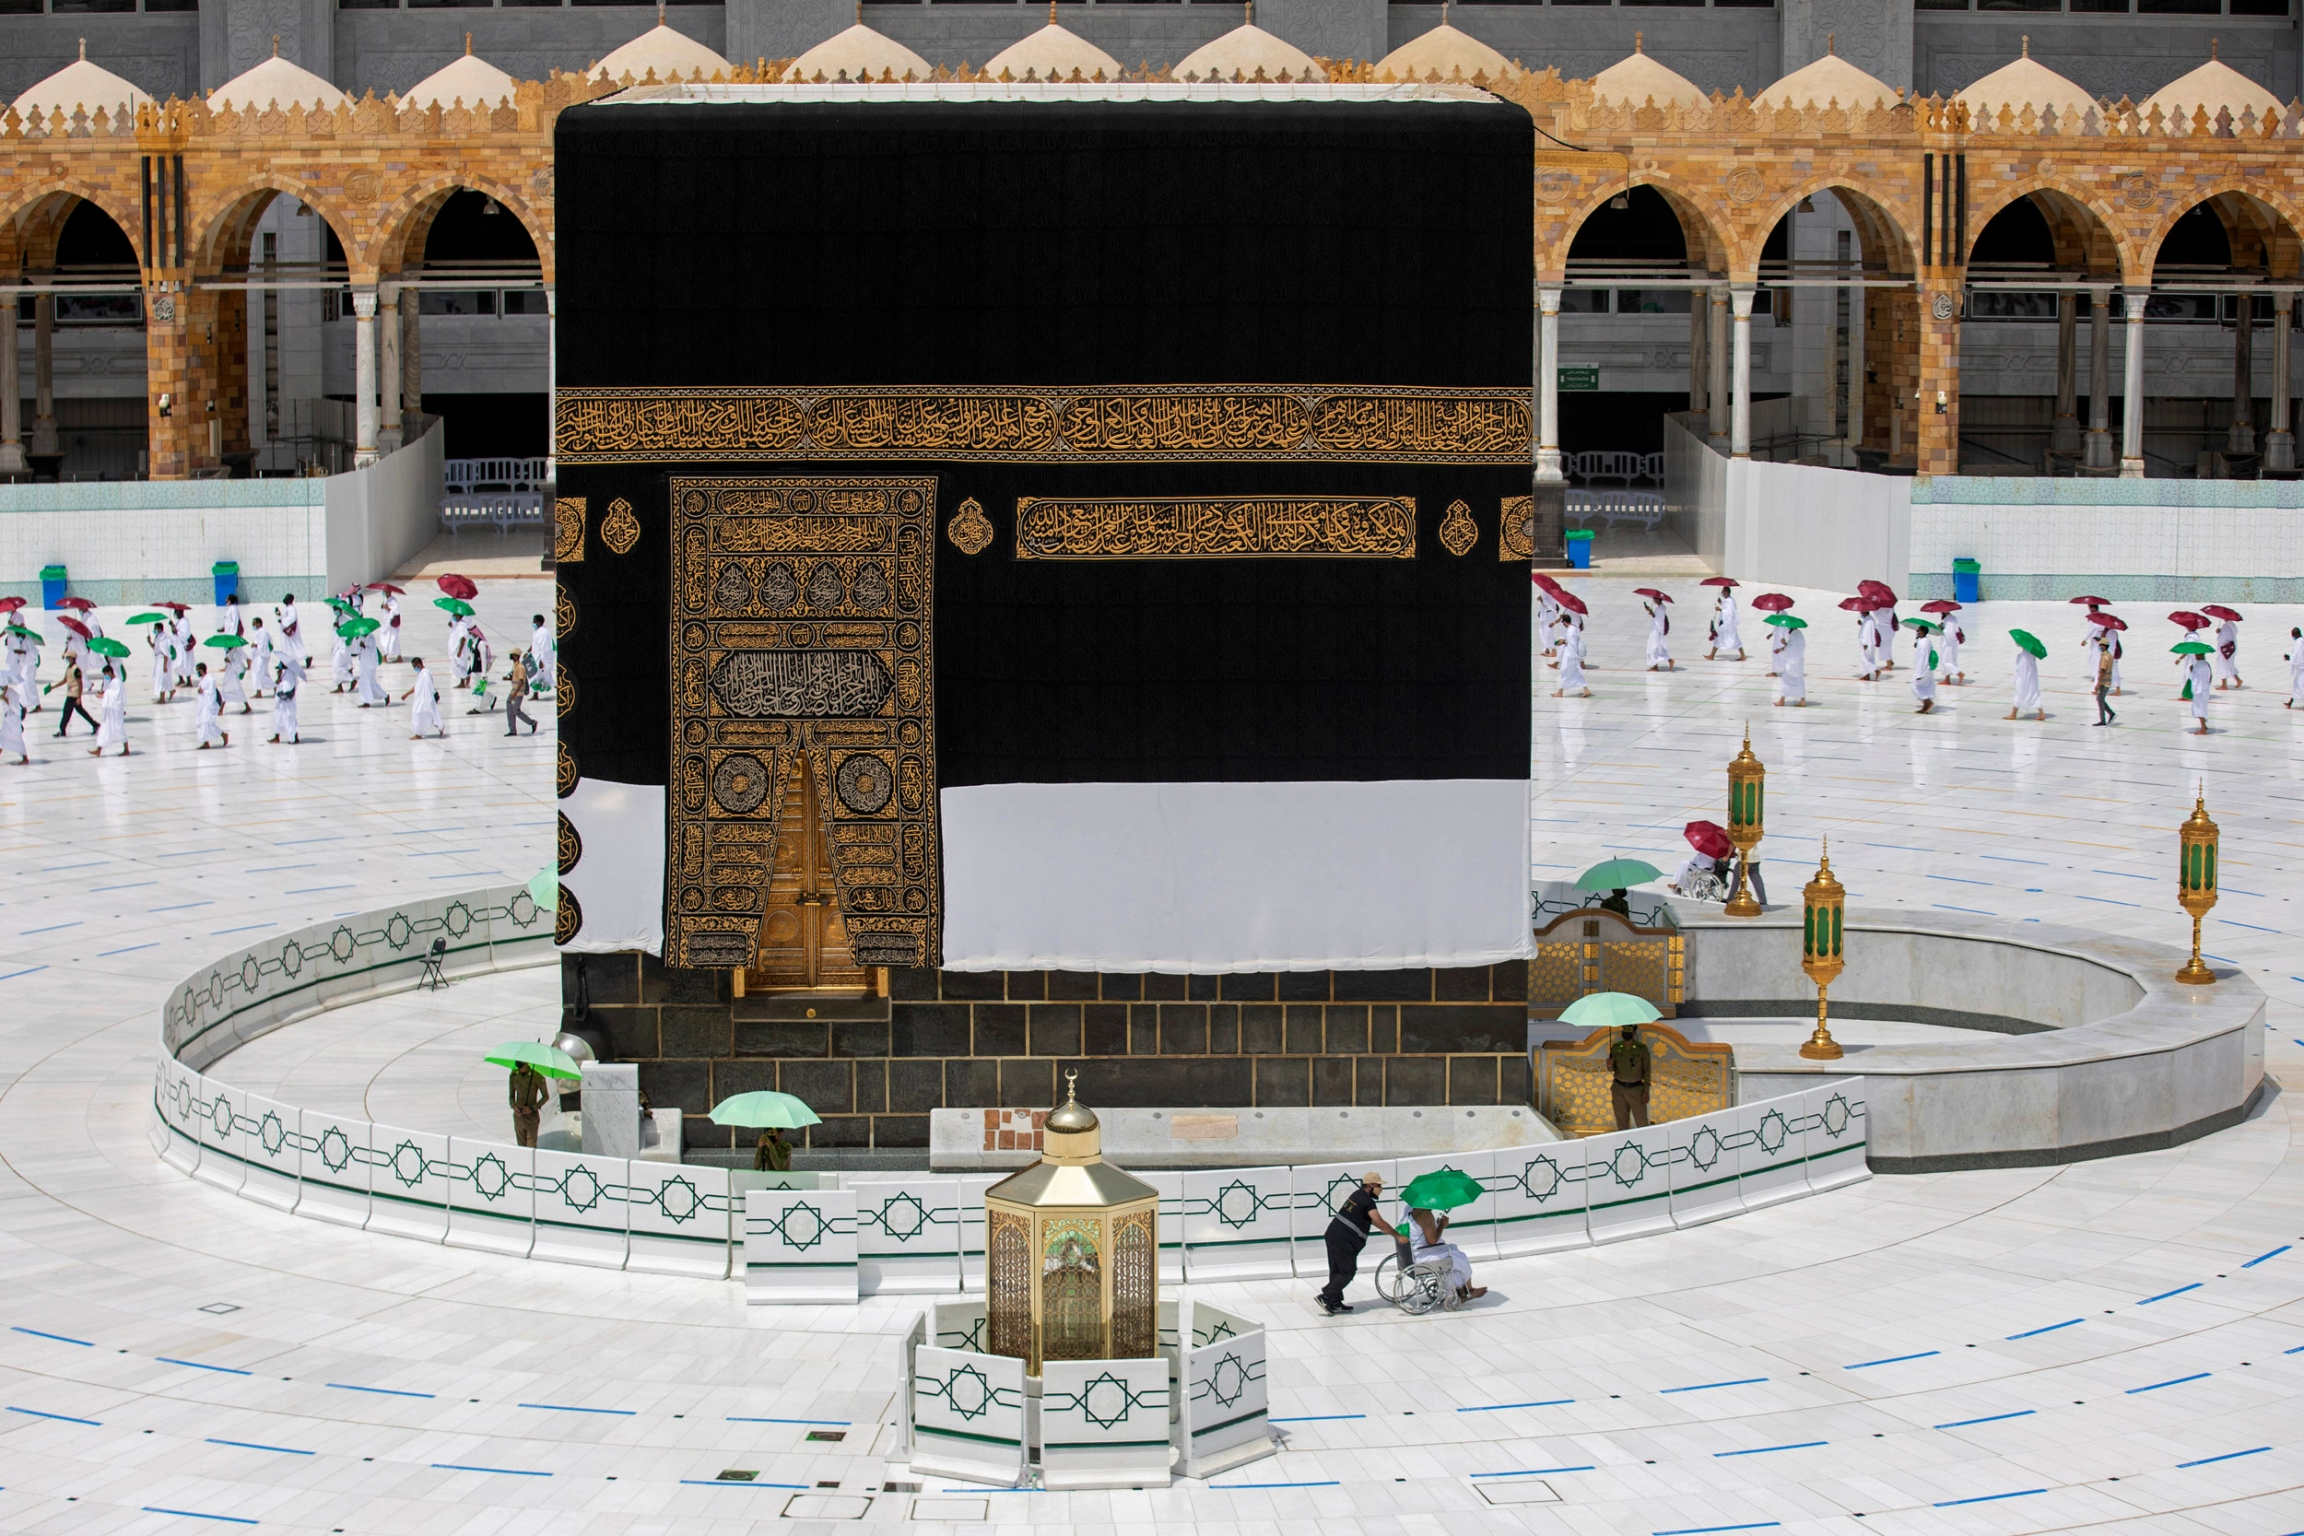 The cube-like Kaaba is shown center frame with a pilgrim being pushed in a wheelchair in the nearground.